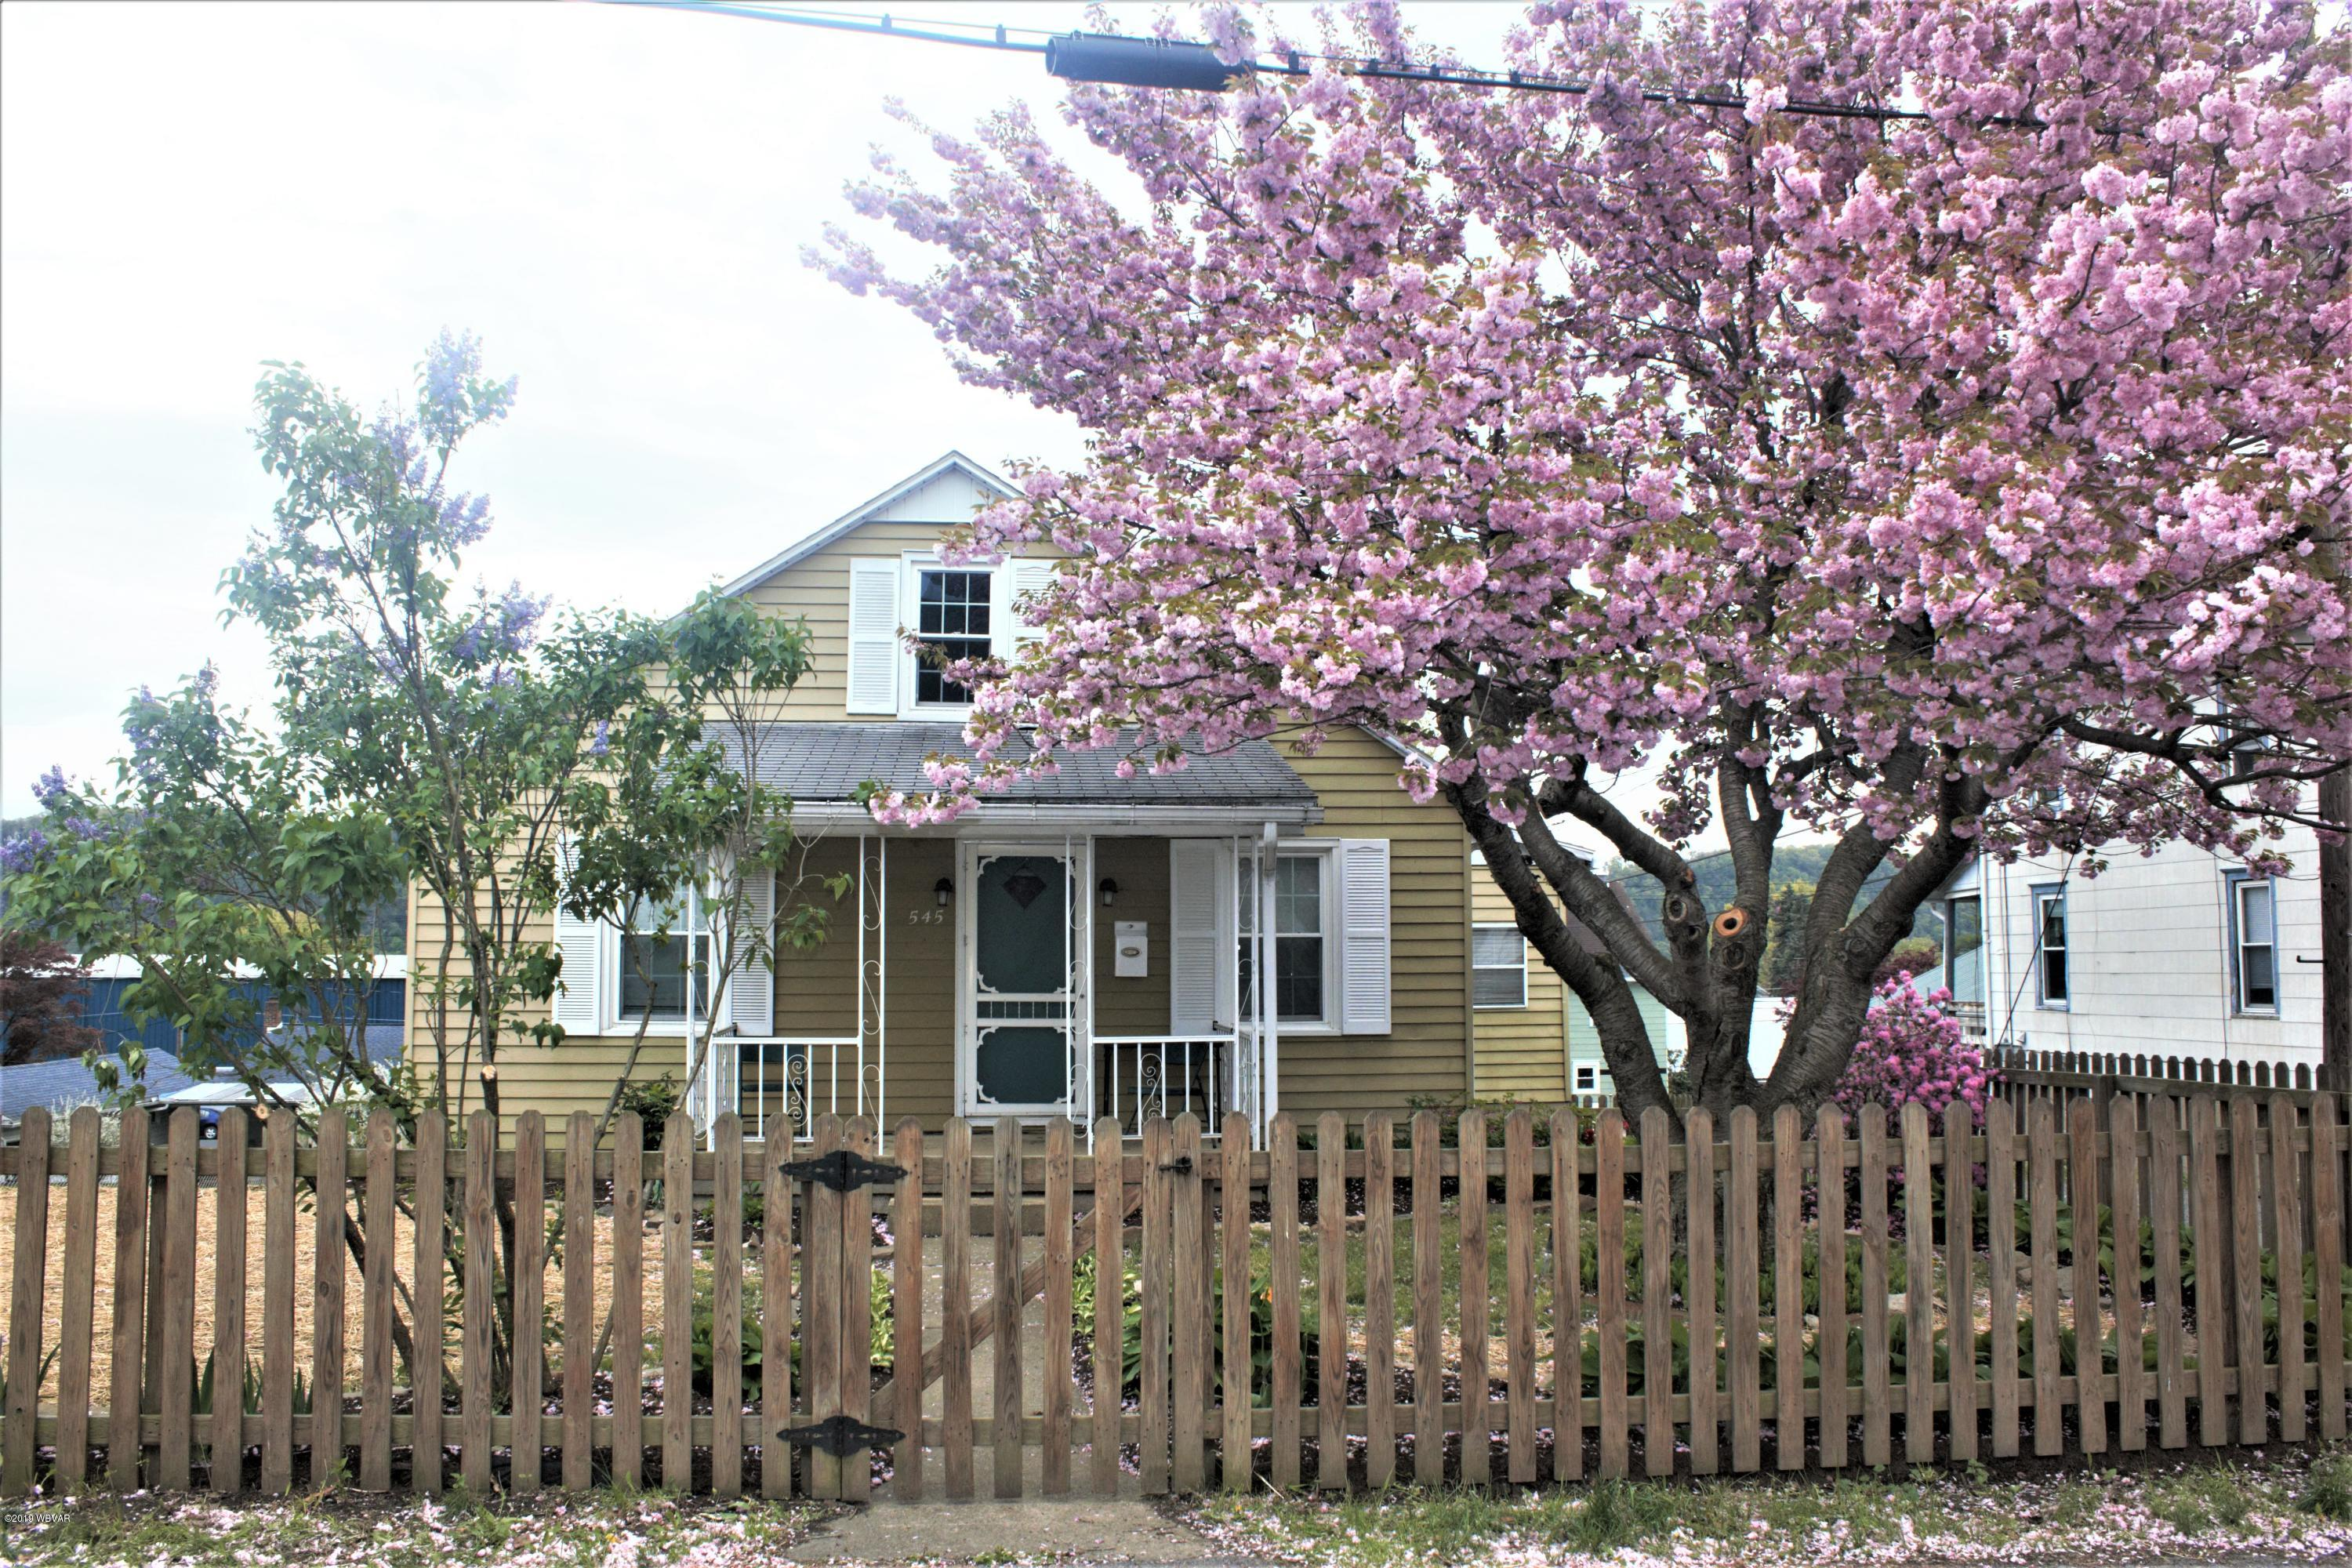 545 WALLACE STREET,Northumberland,PA 17857,3 Bedrooms Bedrooms,1.5 BathroomsBathrooms,Residential,WALLACE,WB-87322